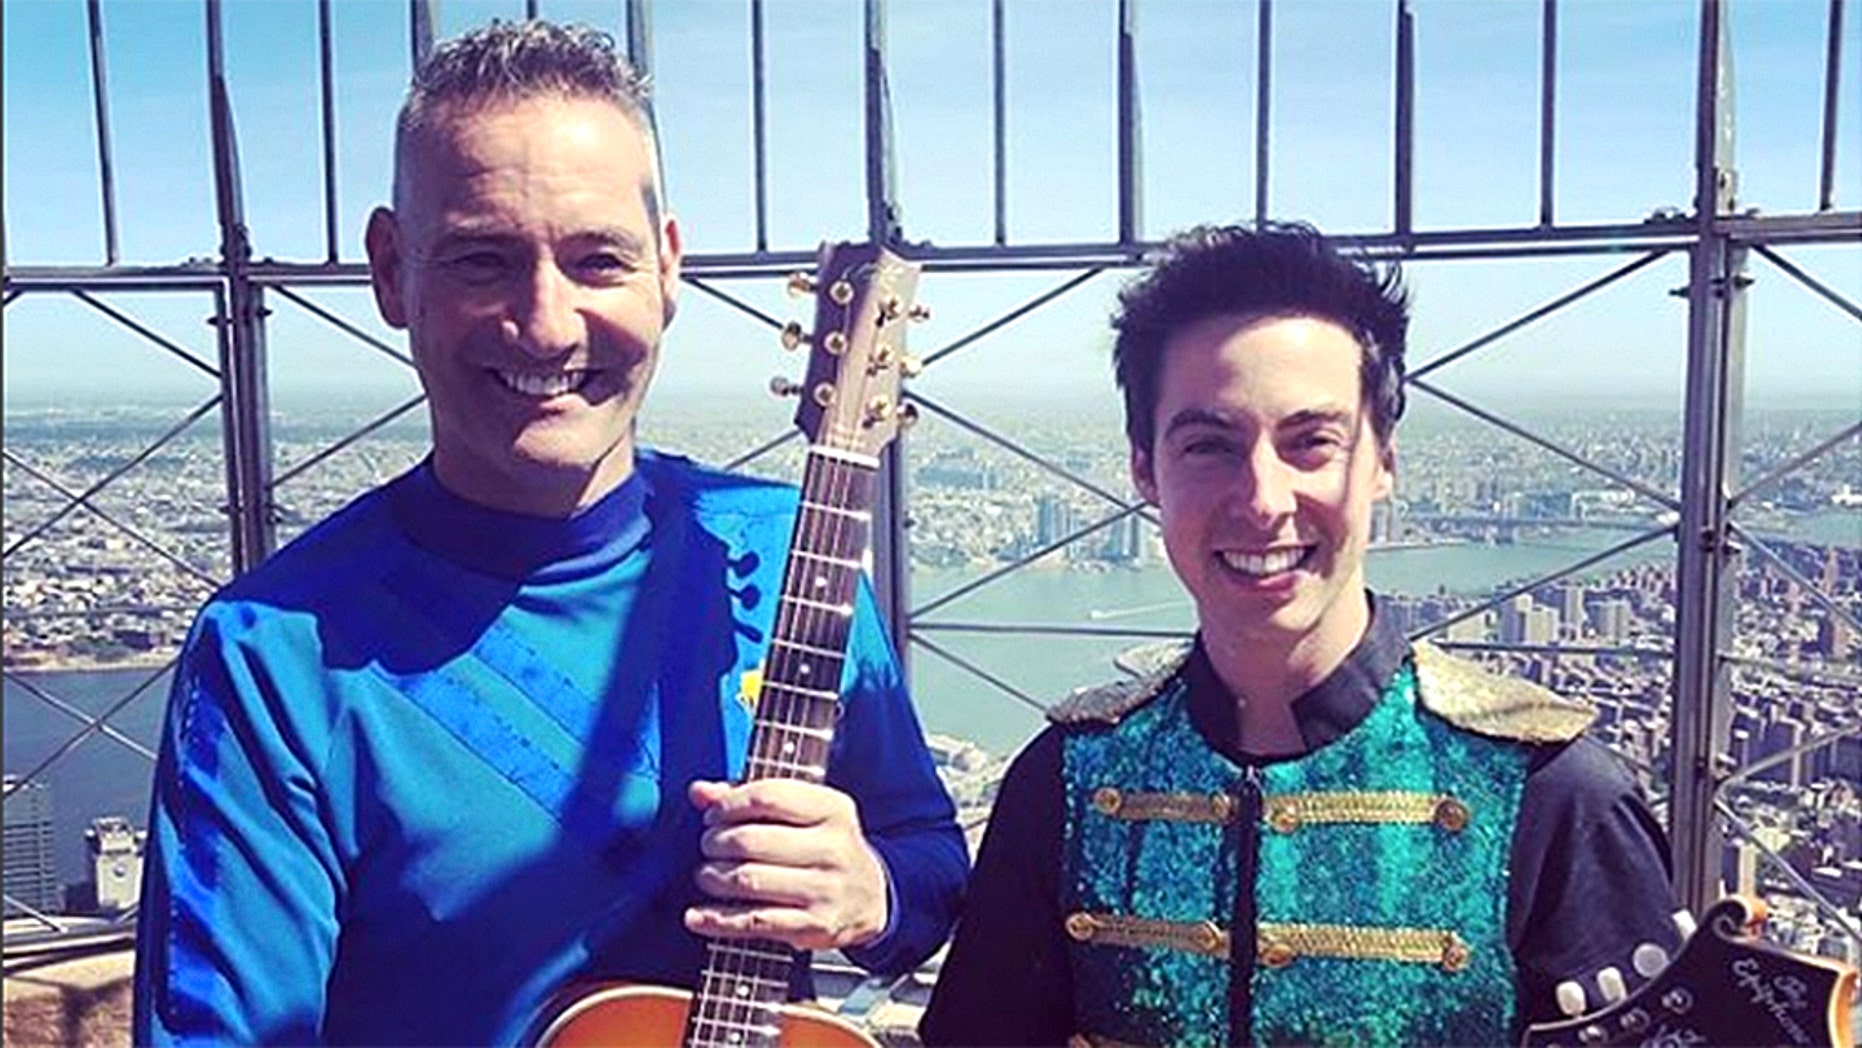 Anthony Field (left), founding member of The Wiggles, injured himself after colliding with a revolving door.